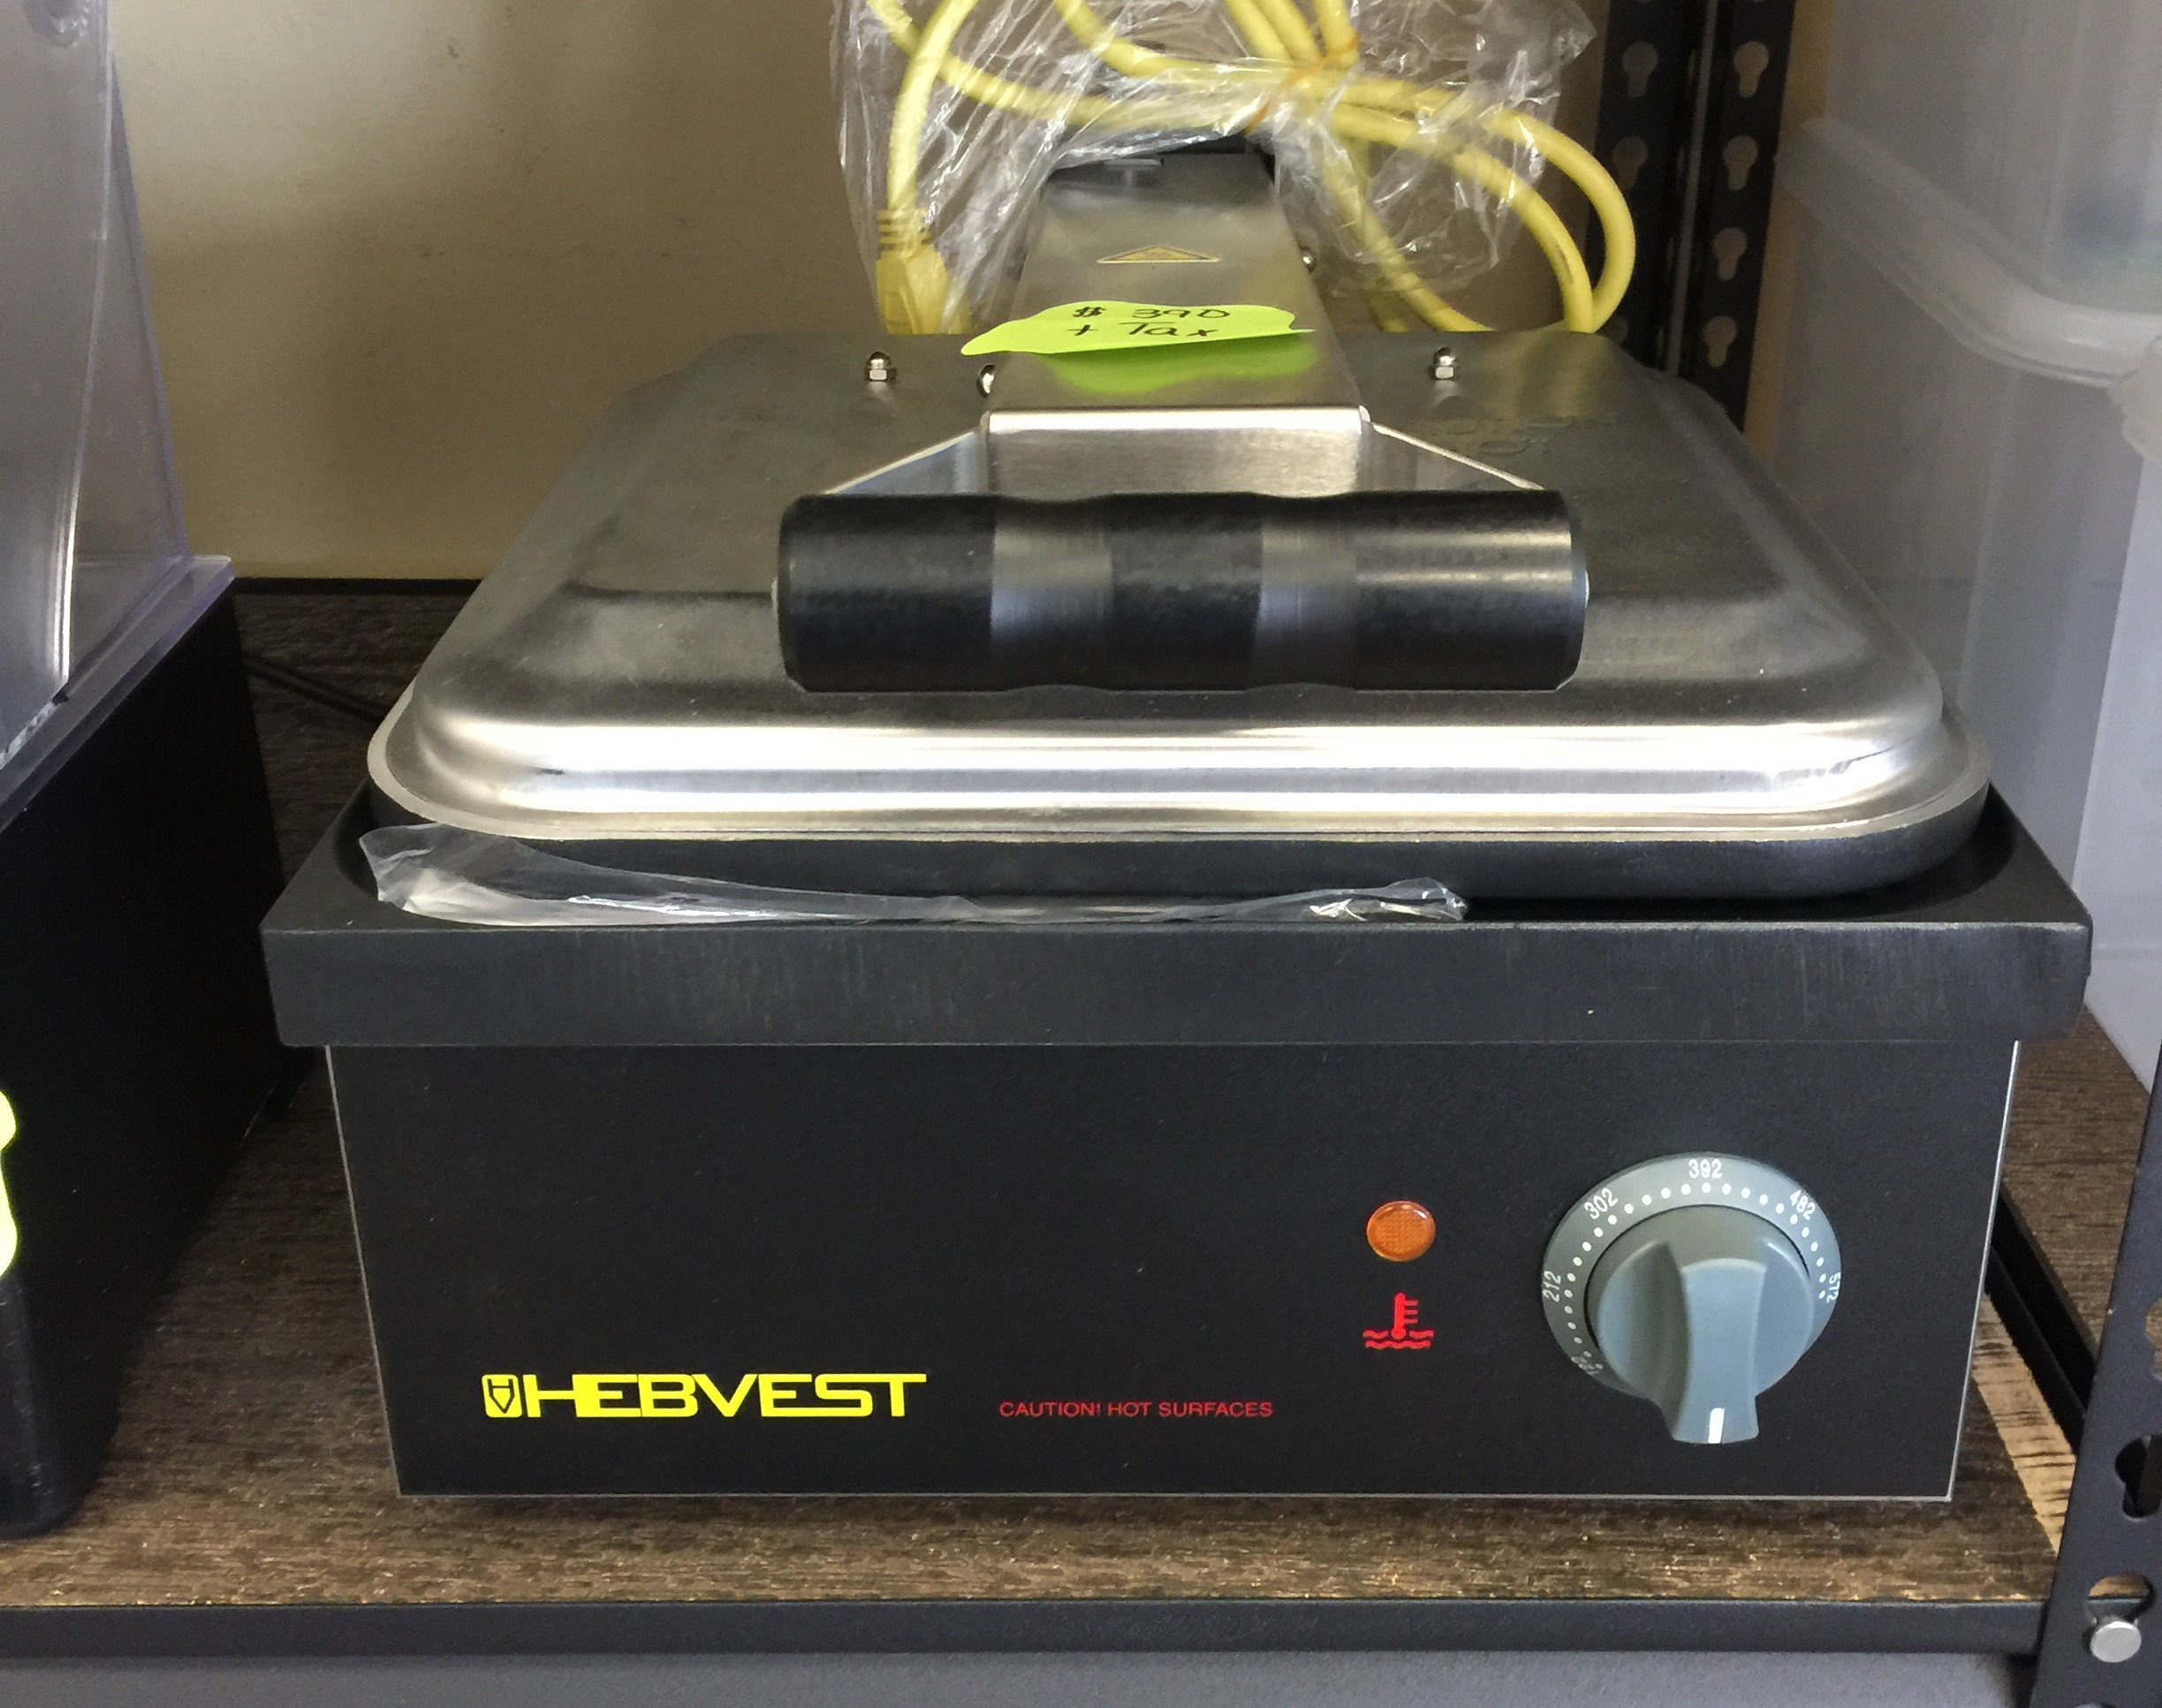 New Hebvest Panini Press  13 x 14 Cooking Surface  120 Volt $ 390.00